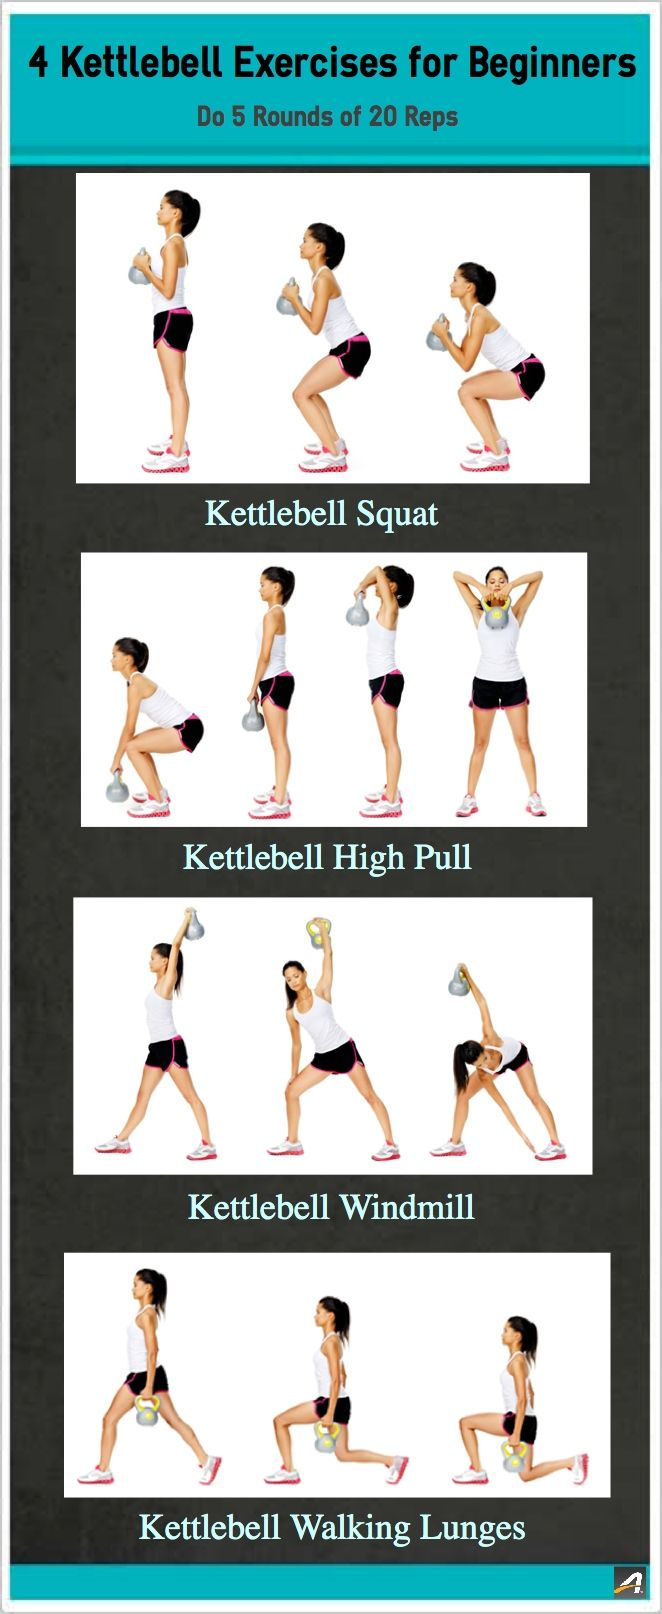 Just starting out? No problem! Check out these Kettlebell Exercises for Beginners #fitness